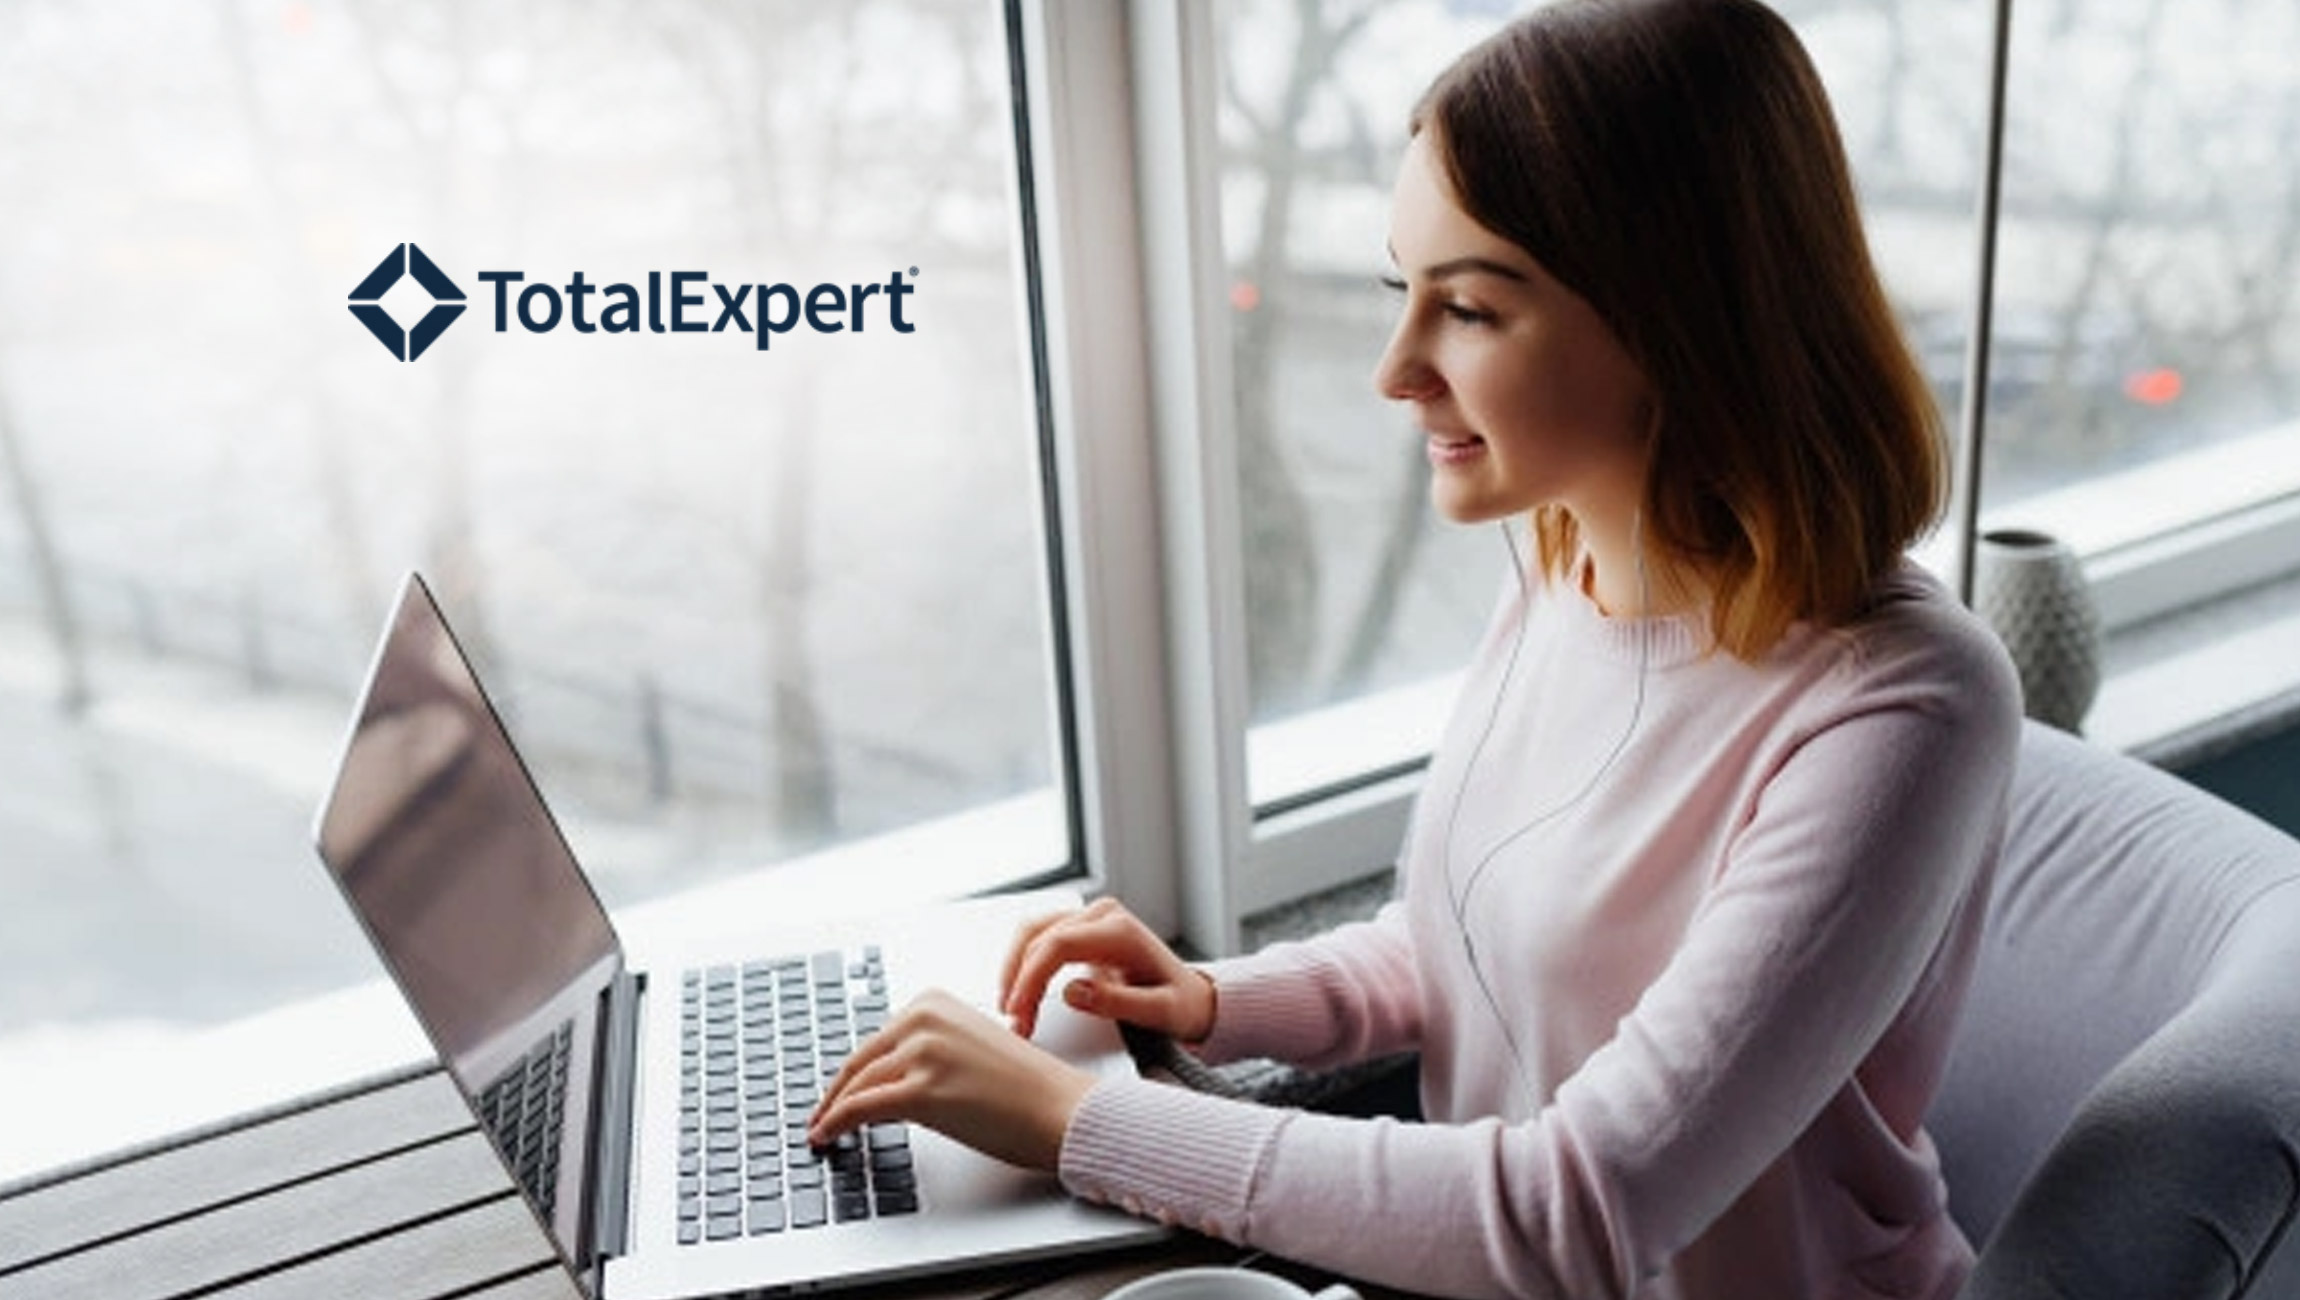 Total Expert Launches TrueIntent to Help Financial Institutions Capture the Voice of the Customer